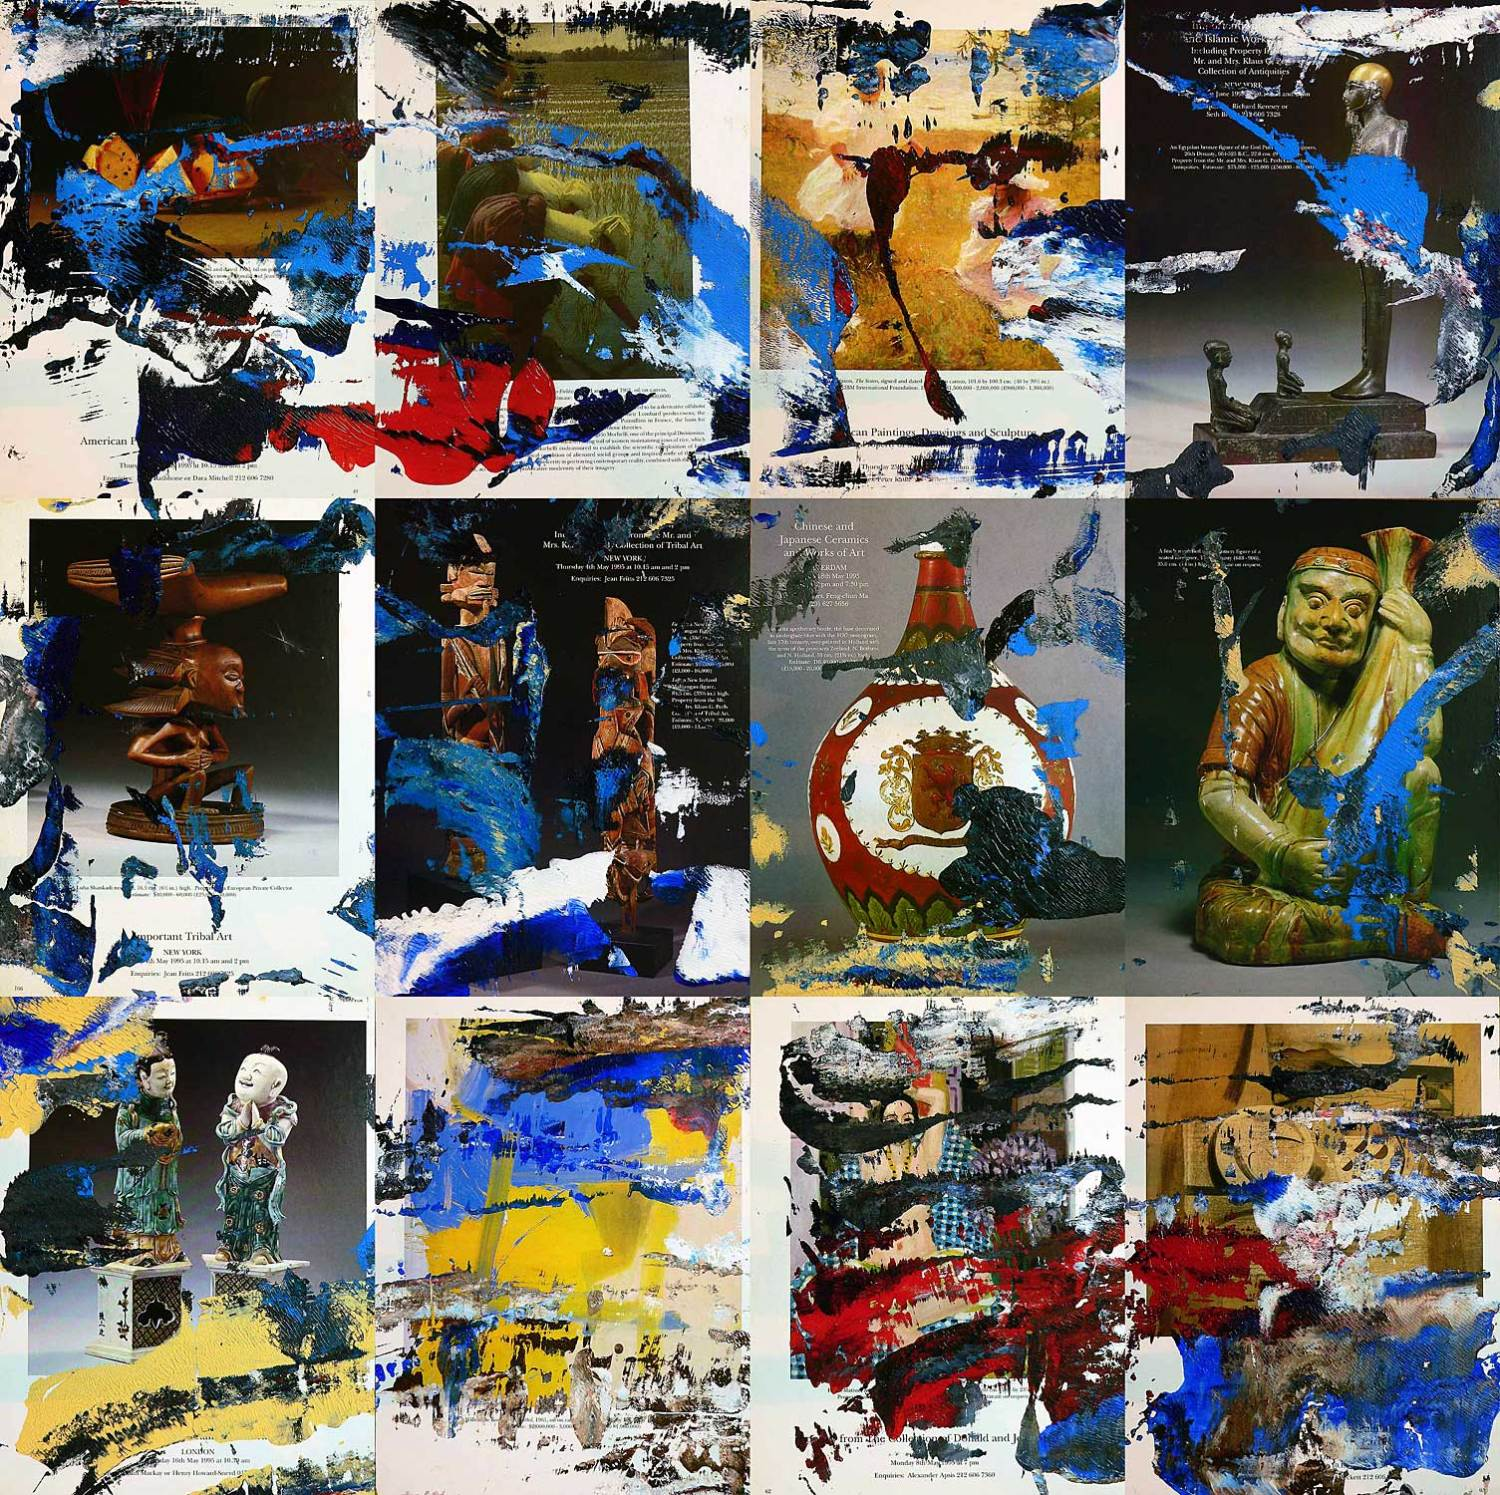 sotheby´s 0212 - series 1 - 29 x 22 cm each (12 parts) - acrylic on sotheby´s catalogue pages mounted on wood boxes - 2012